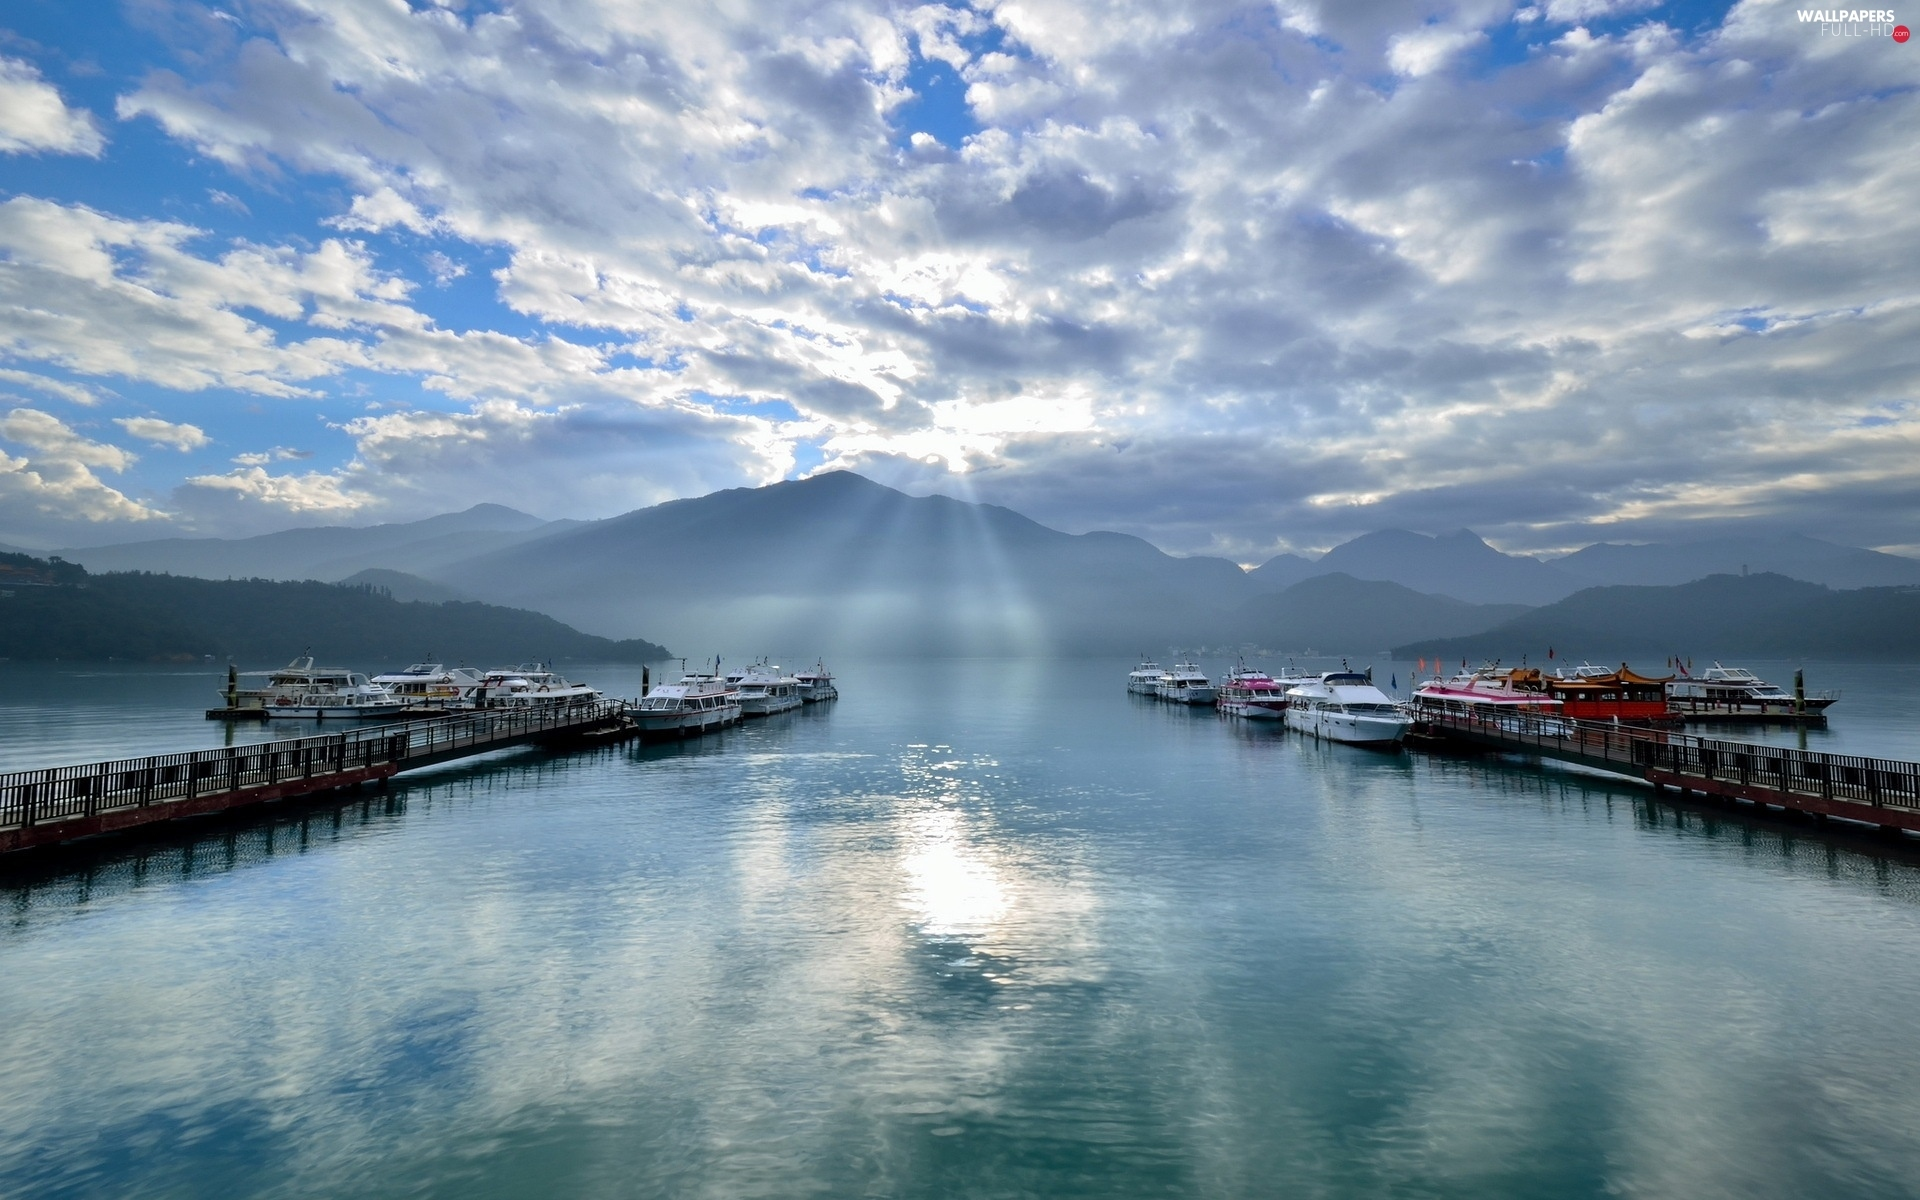 rays, lake, sun, Mountains, Harbour, Yachts, clouds, Boats